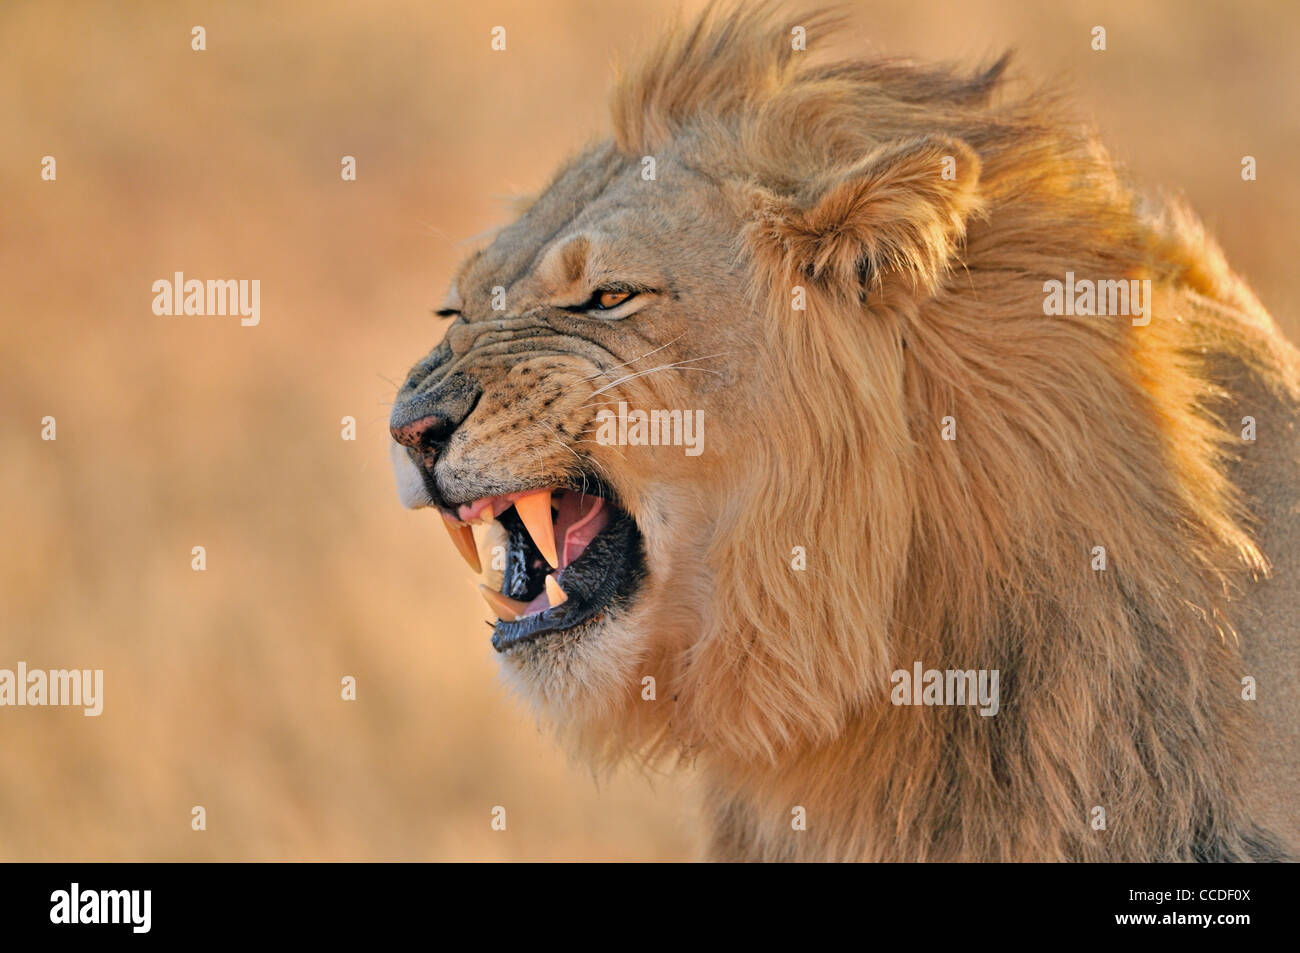 Male African lion (Panthera leo) showing the flehmen response, Kalahari desert, Kgalagadi Transfrontier Park, South - Stock Image